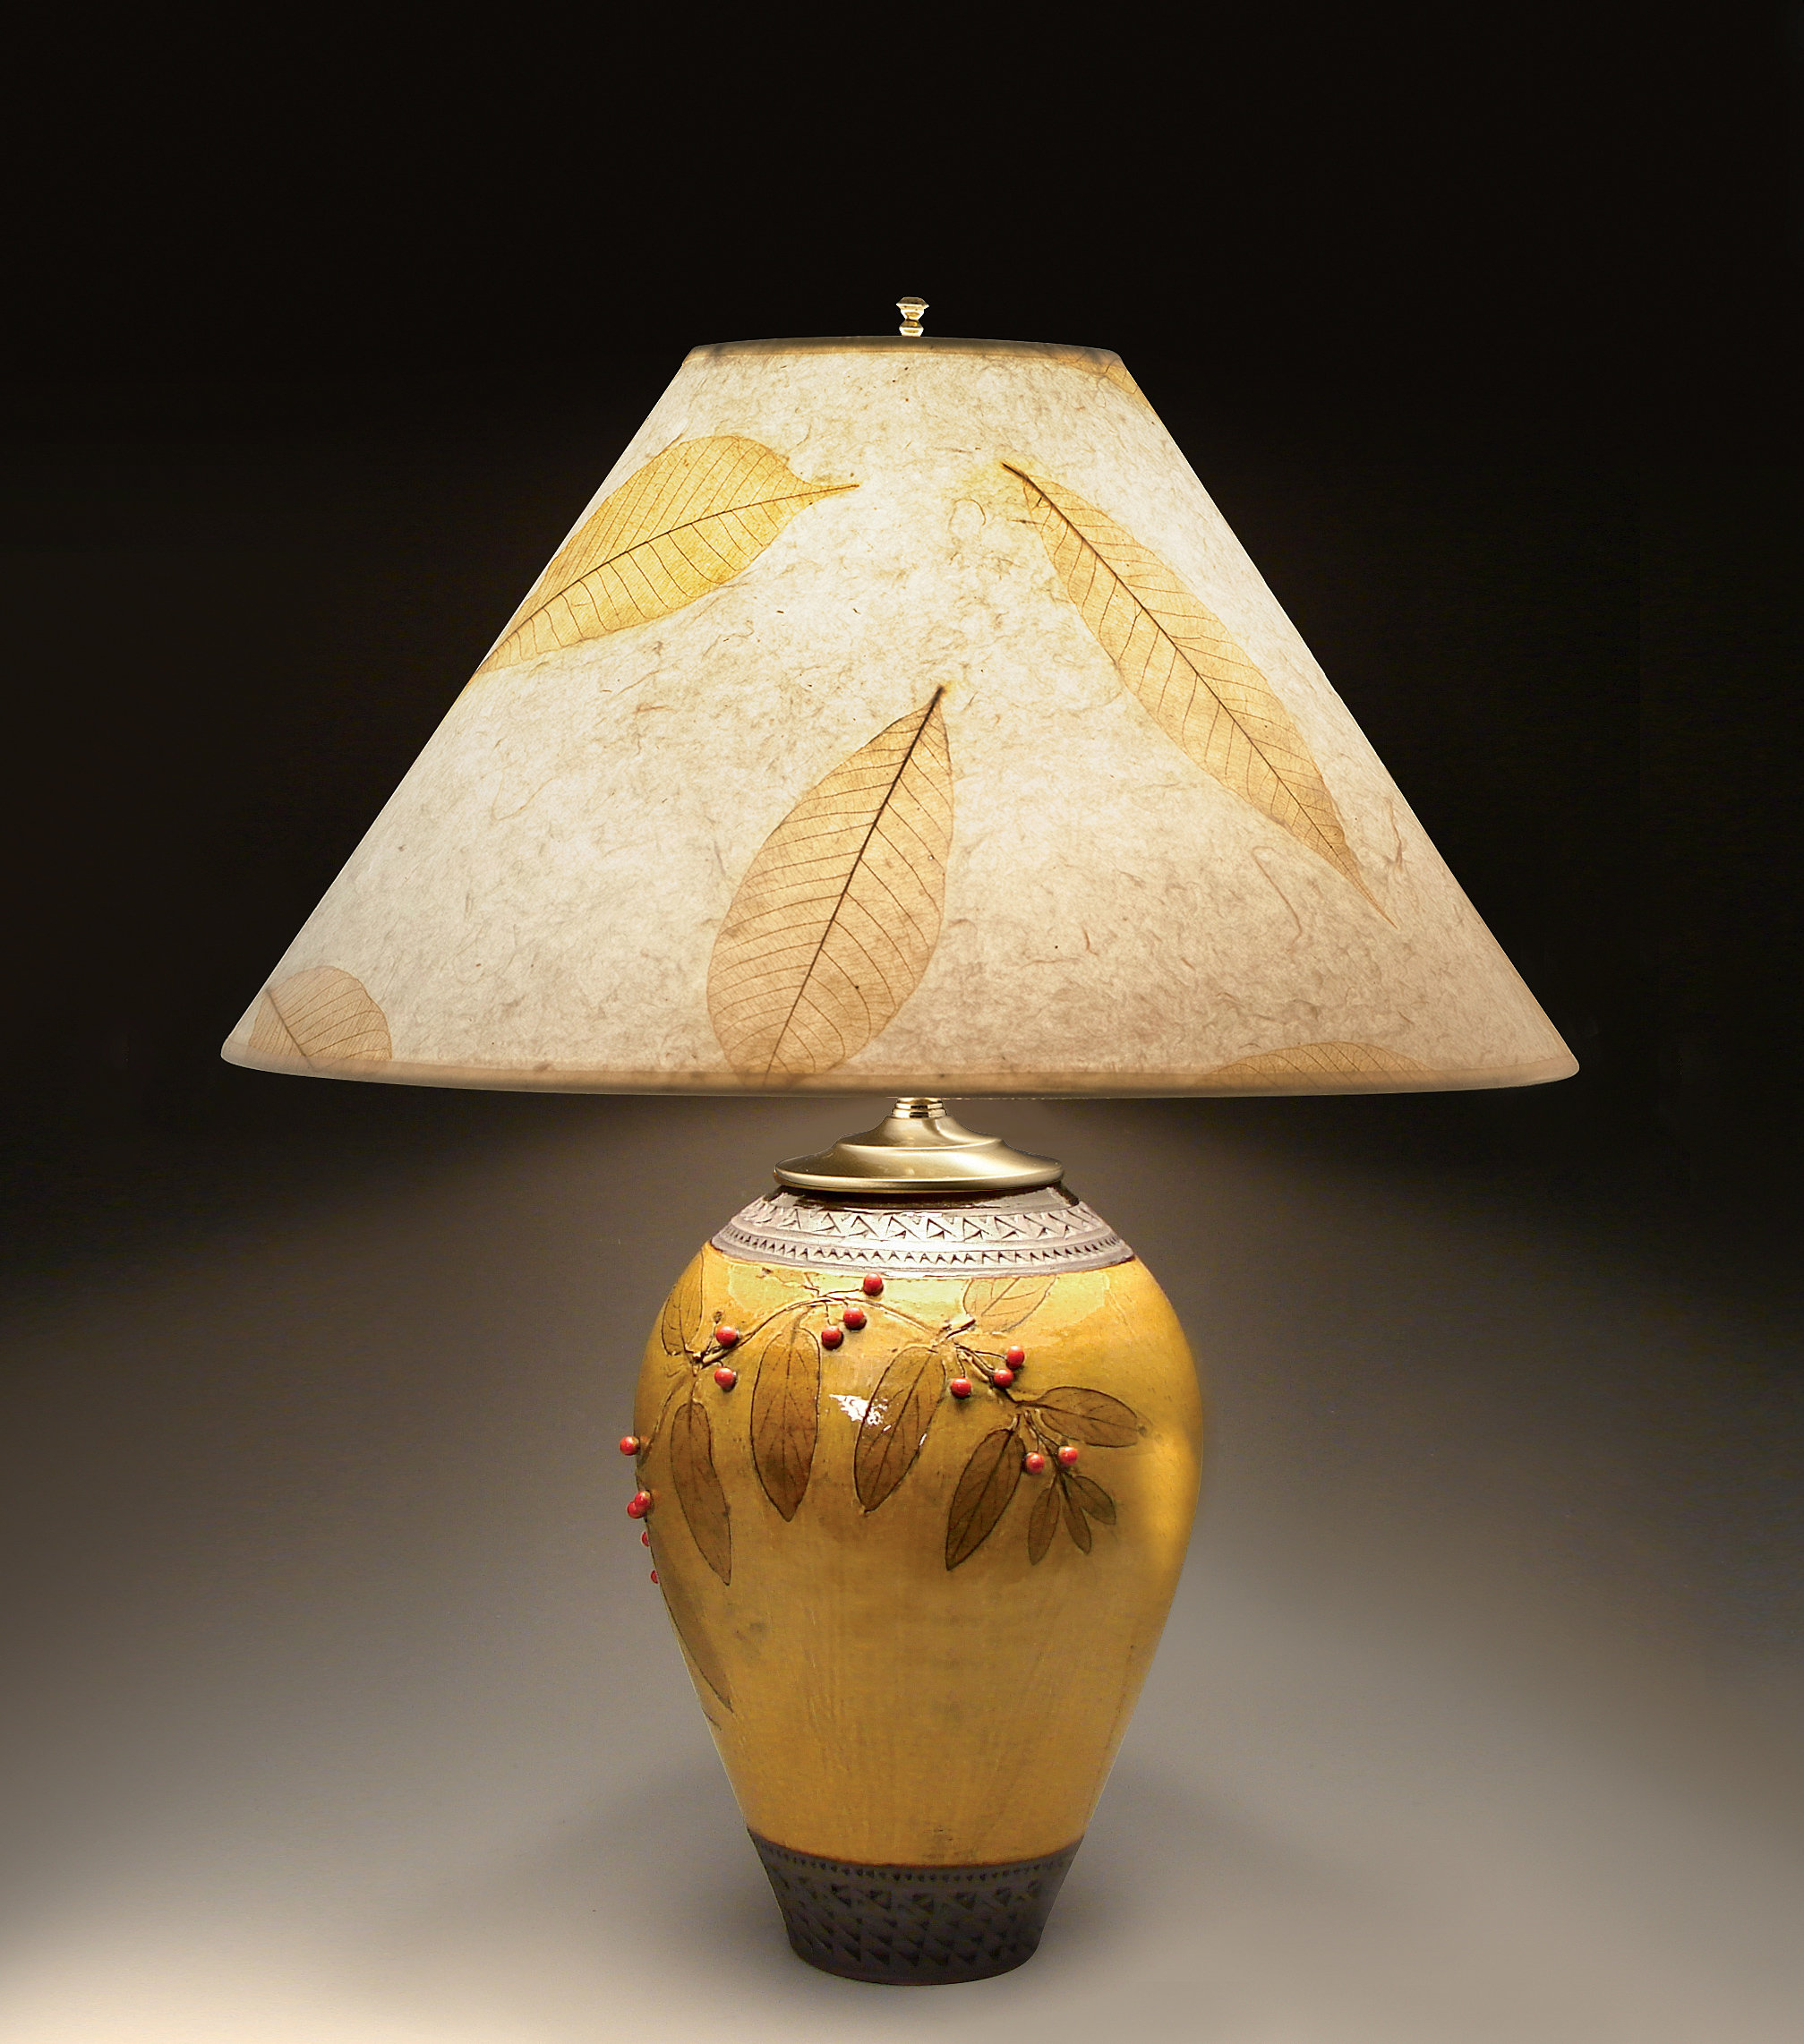 Yellow Ceramic Table Lamp Gives Highlights To Any Zone Of